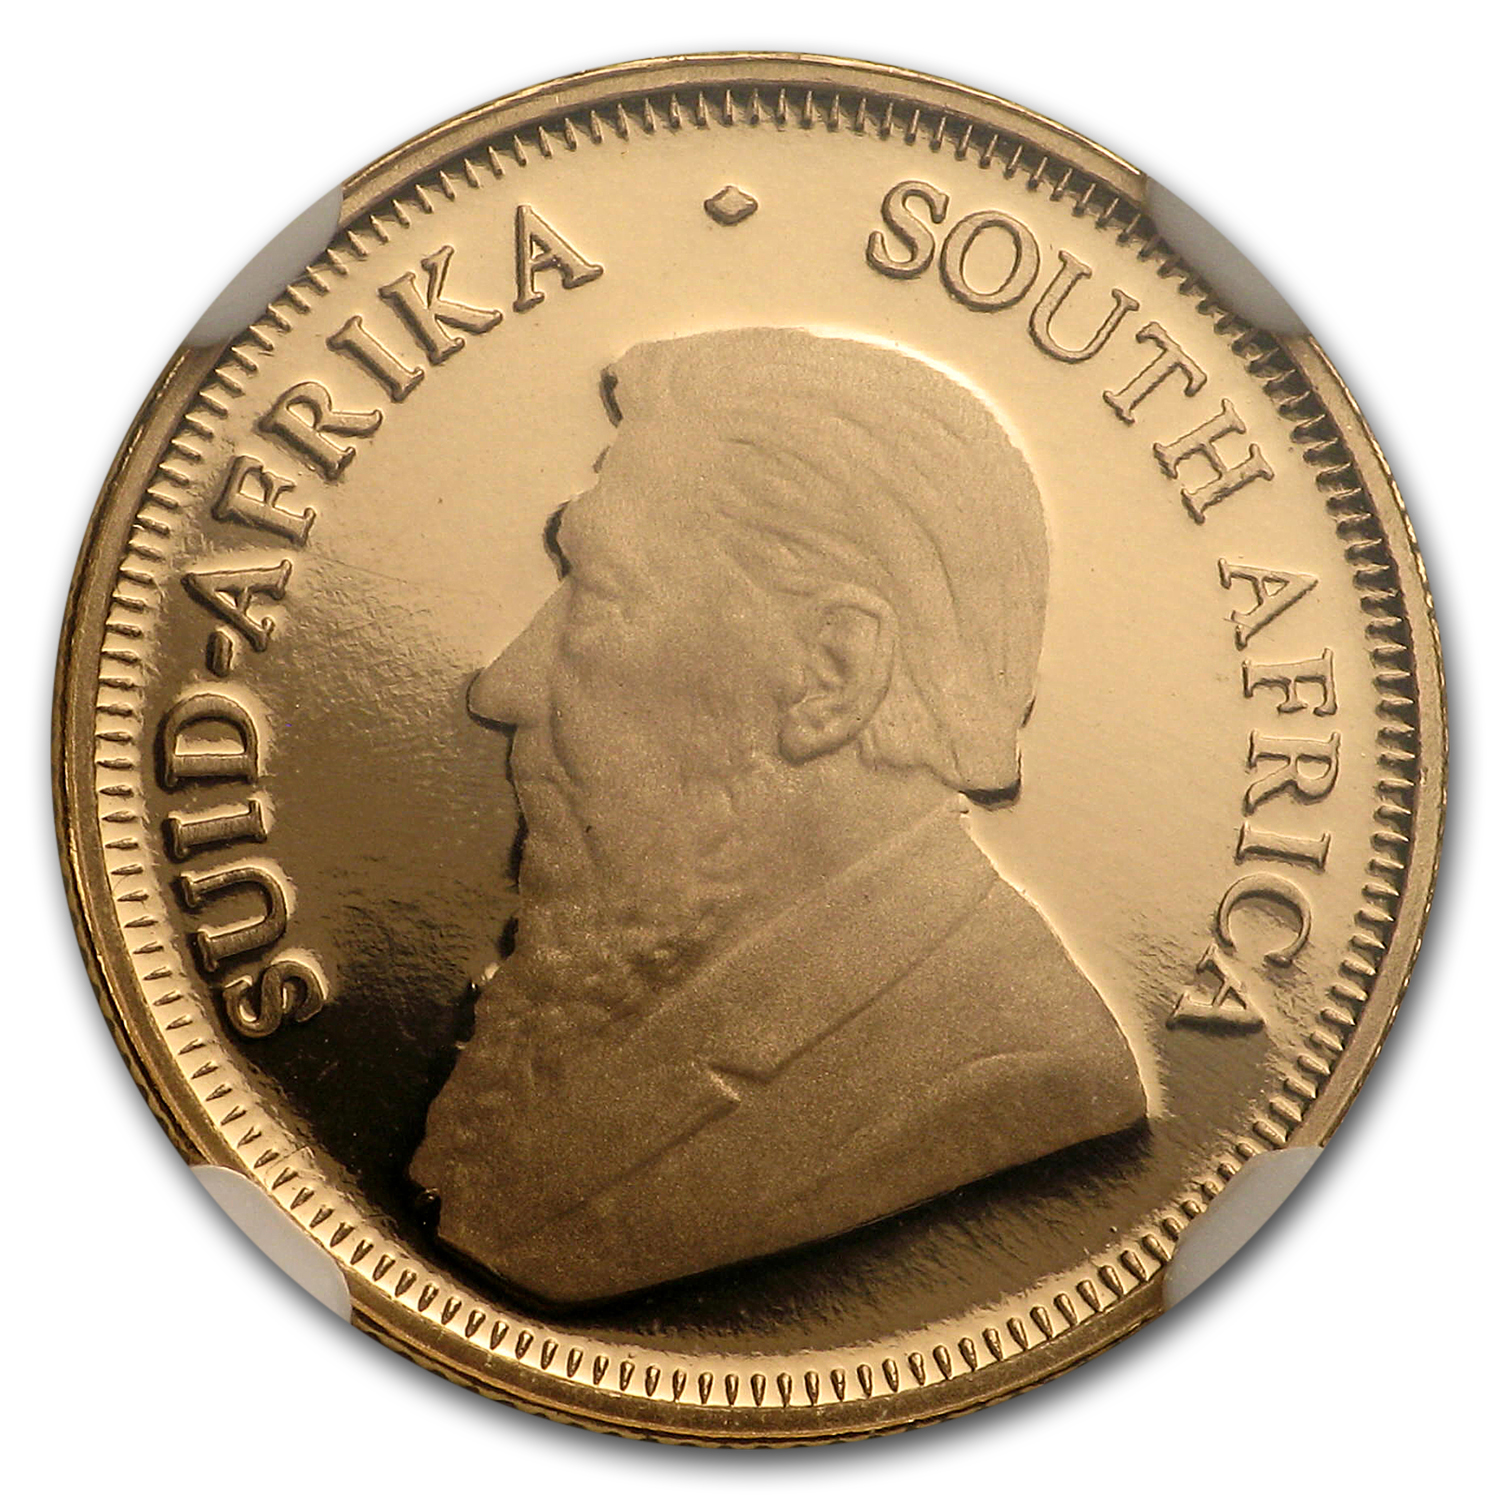 2008 South Africa 1/10 oz Gold Krugerrand PF-70 NGC